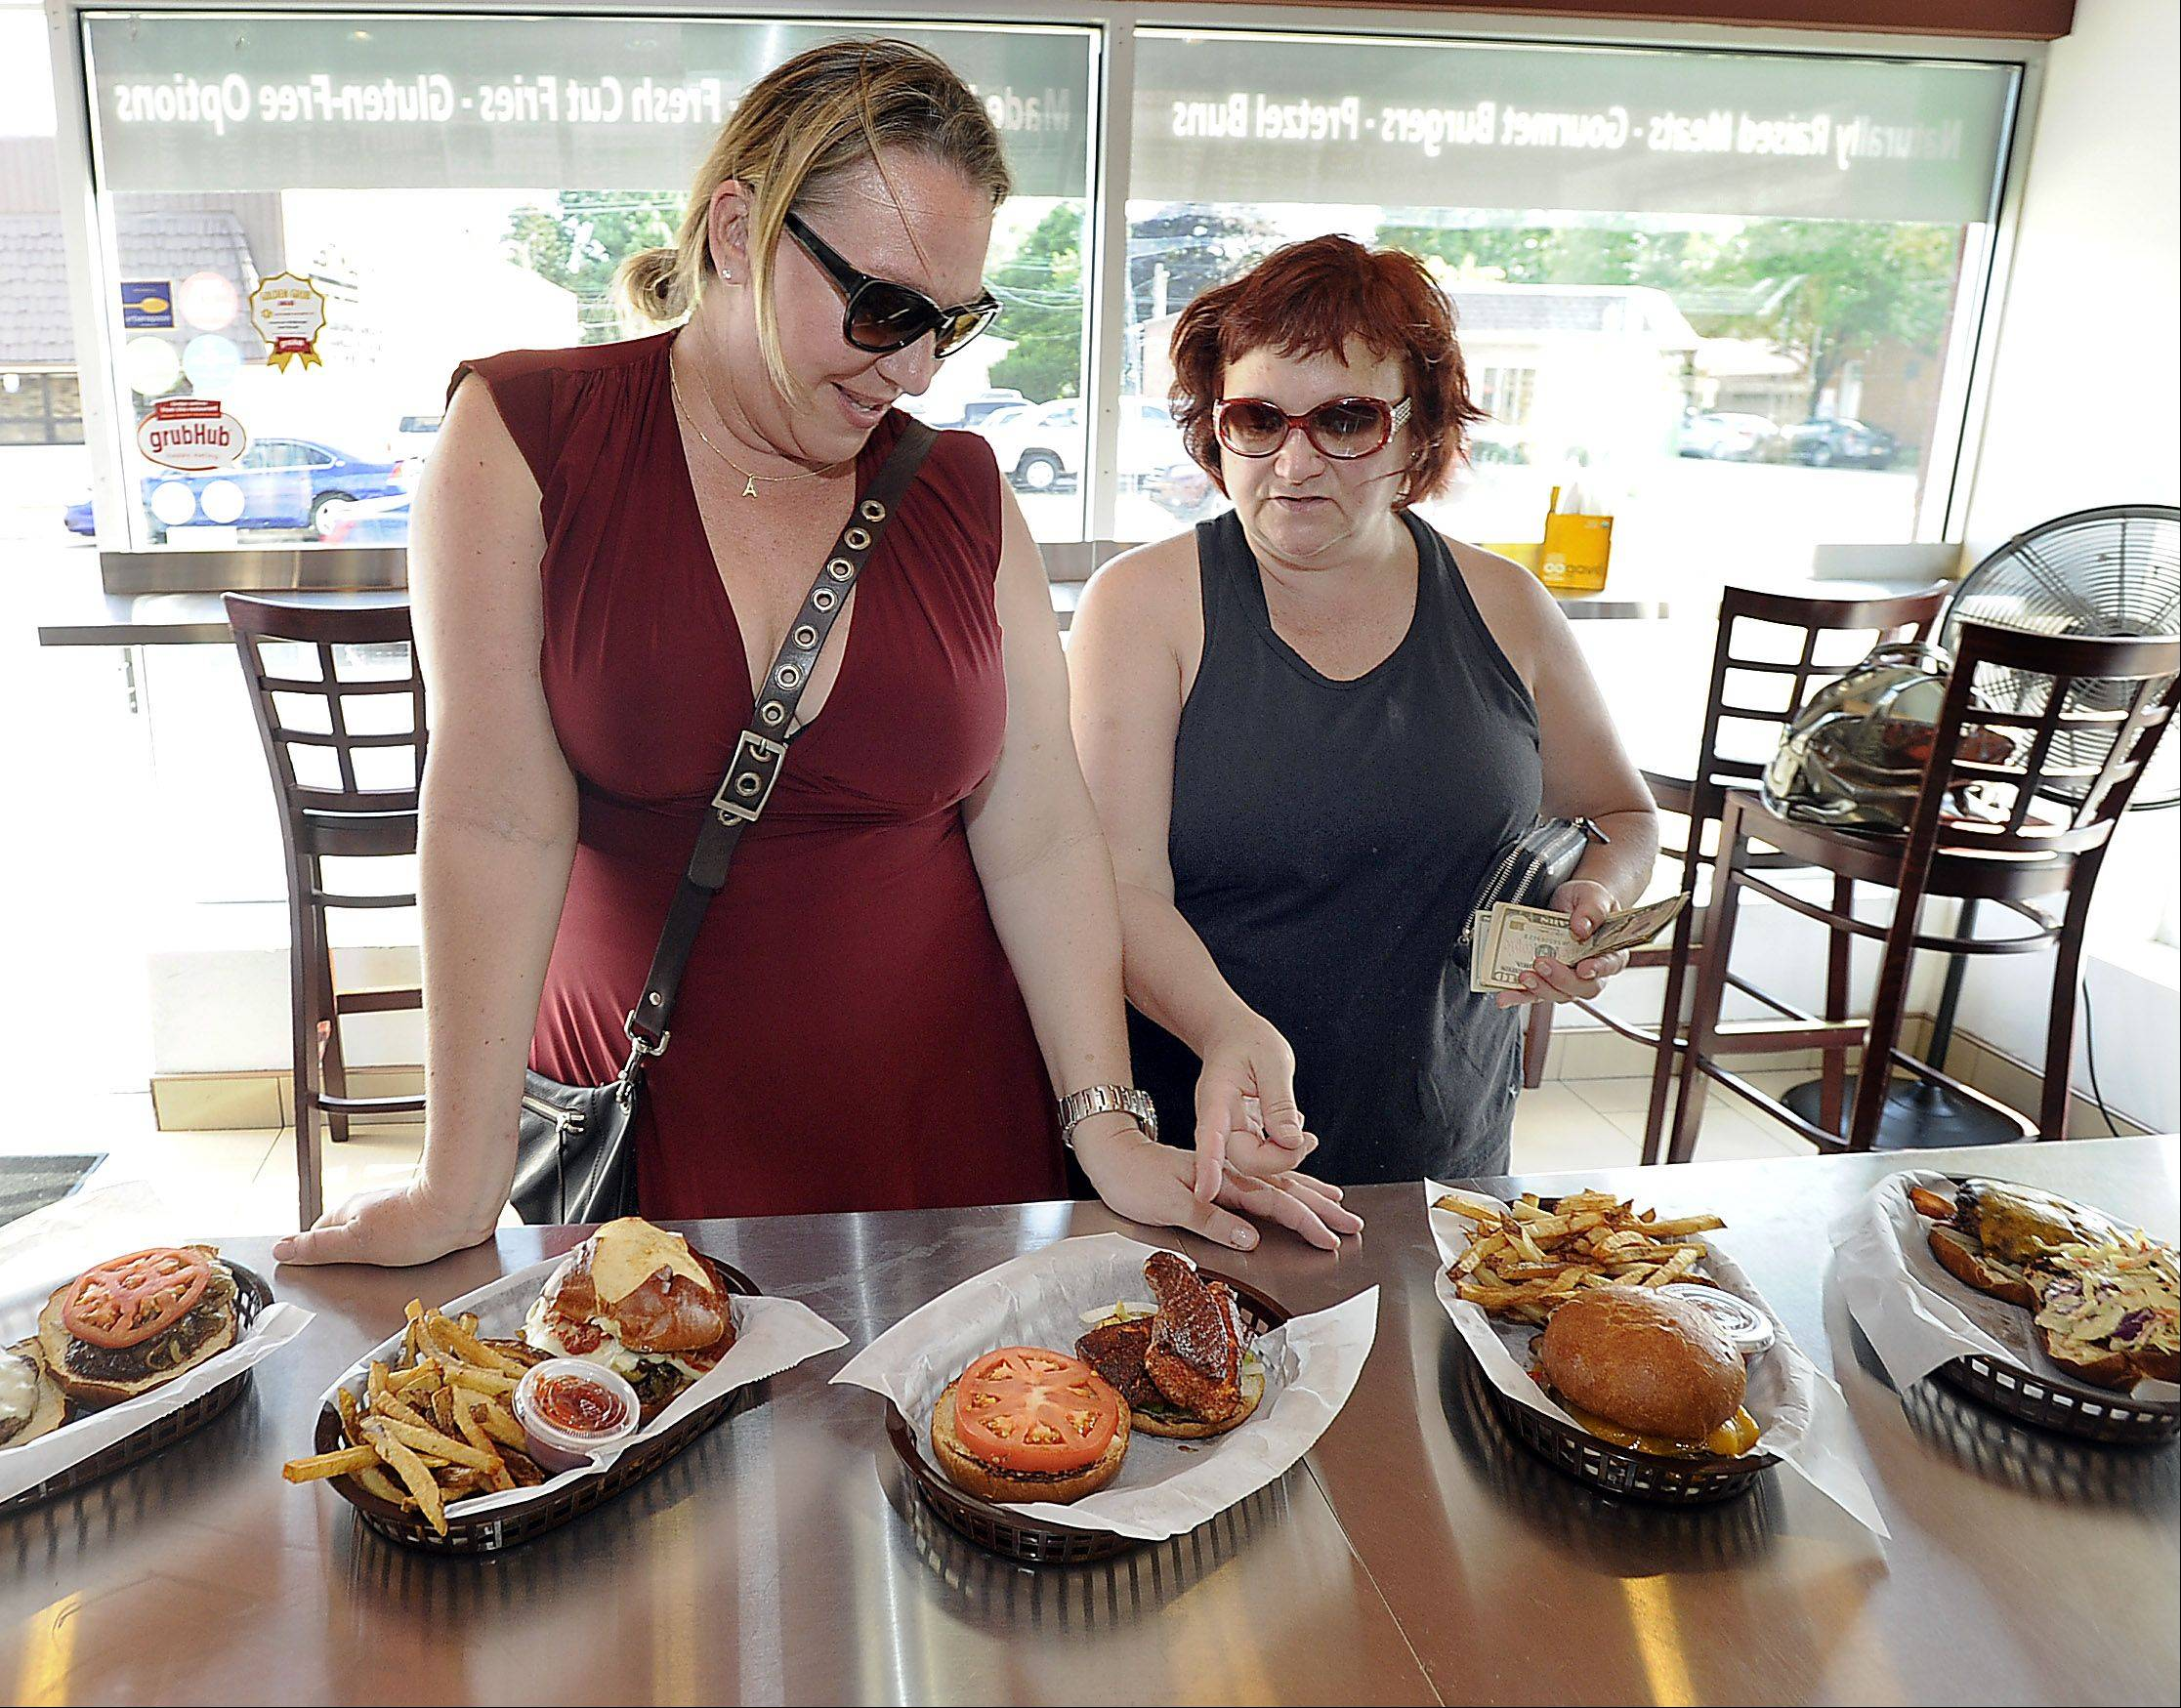 Paula Vazzell of Los Angeles and friend Karol Kent of Des Plaines check out the selection at American Wildburger in Des Plaines.